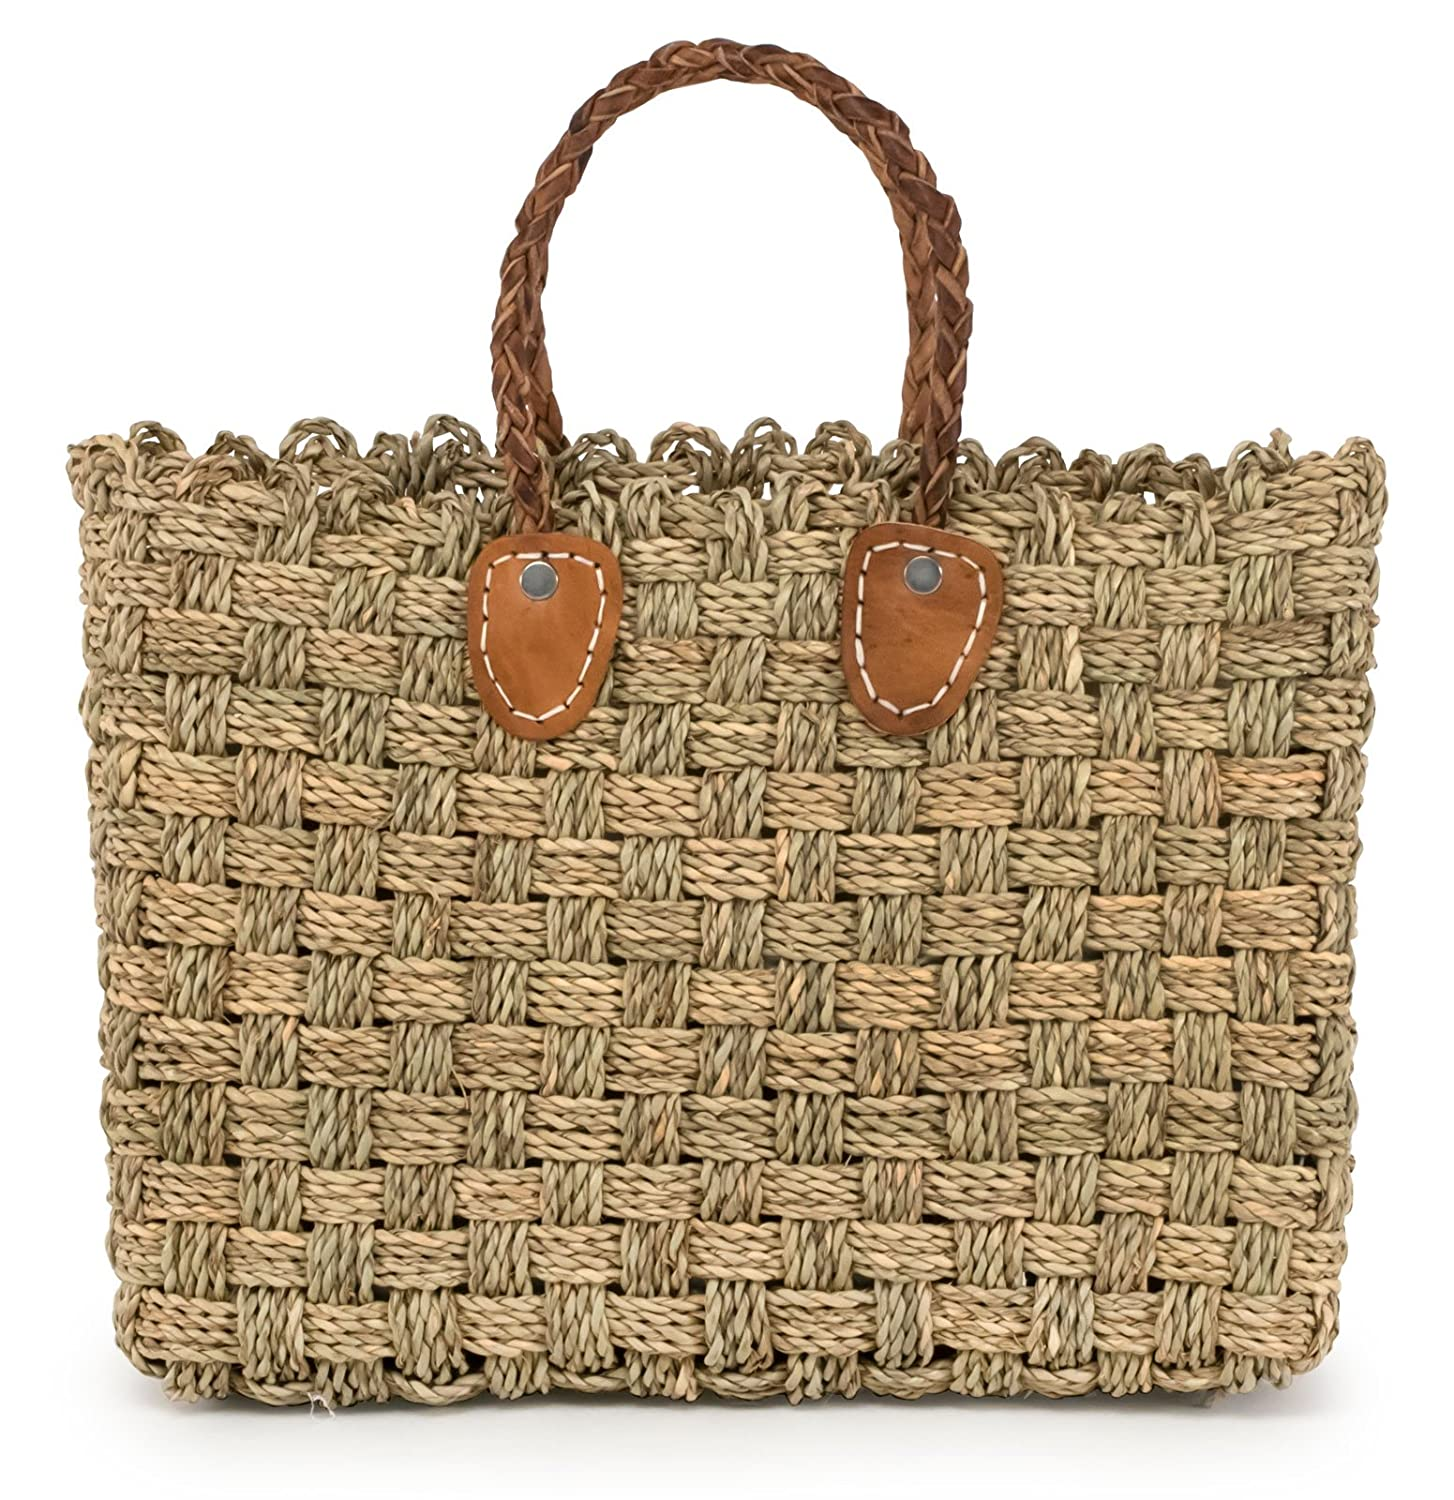 Moroccan Straw Tote Bag w Brown Leather Handles, 15.5 Lx5 Wx11.5 H – Granada Sm